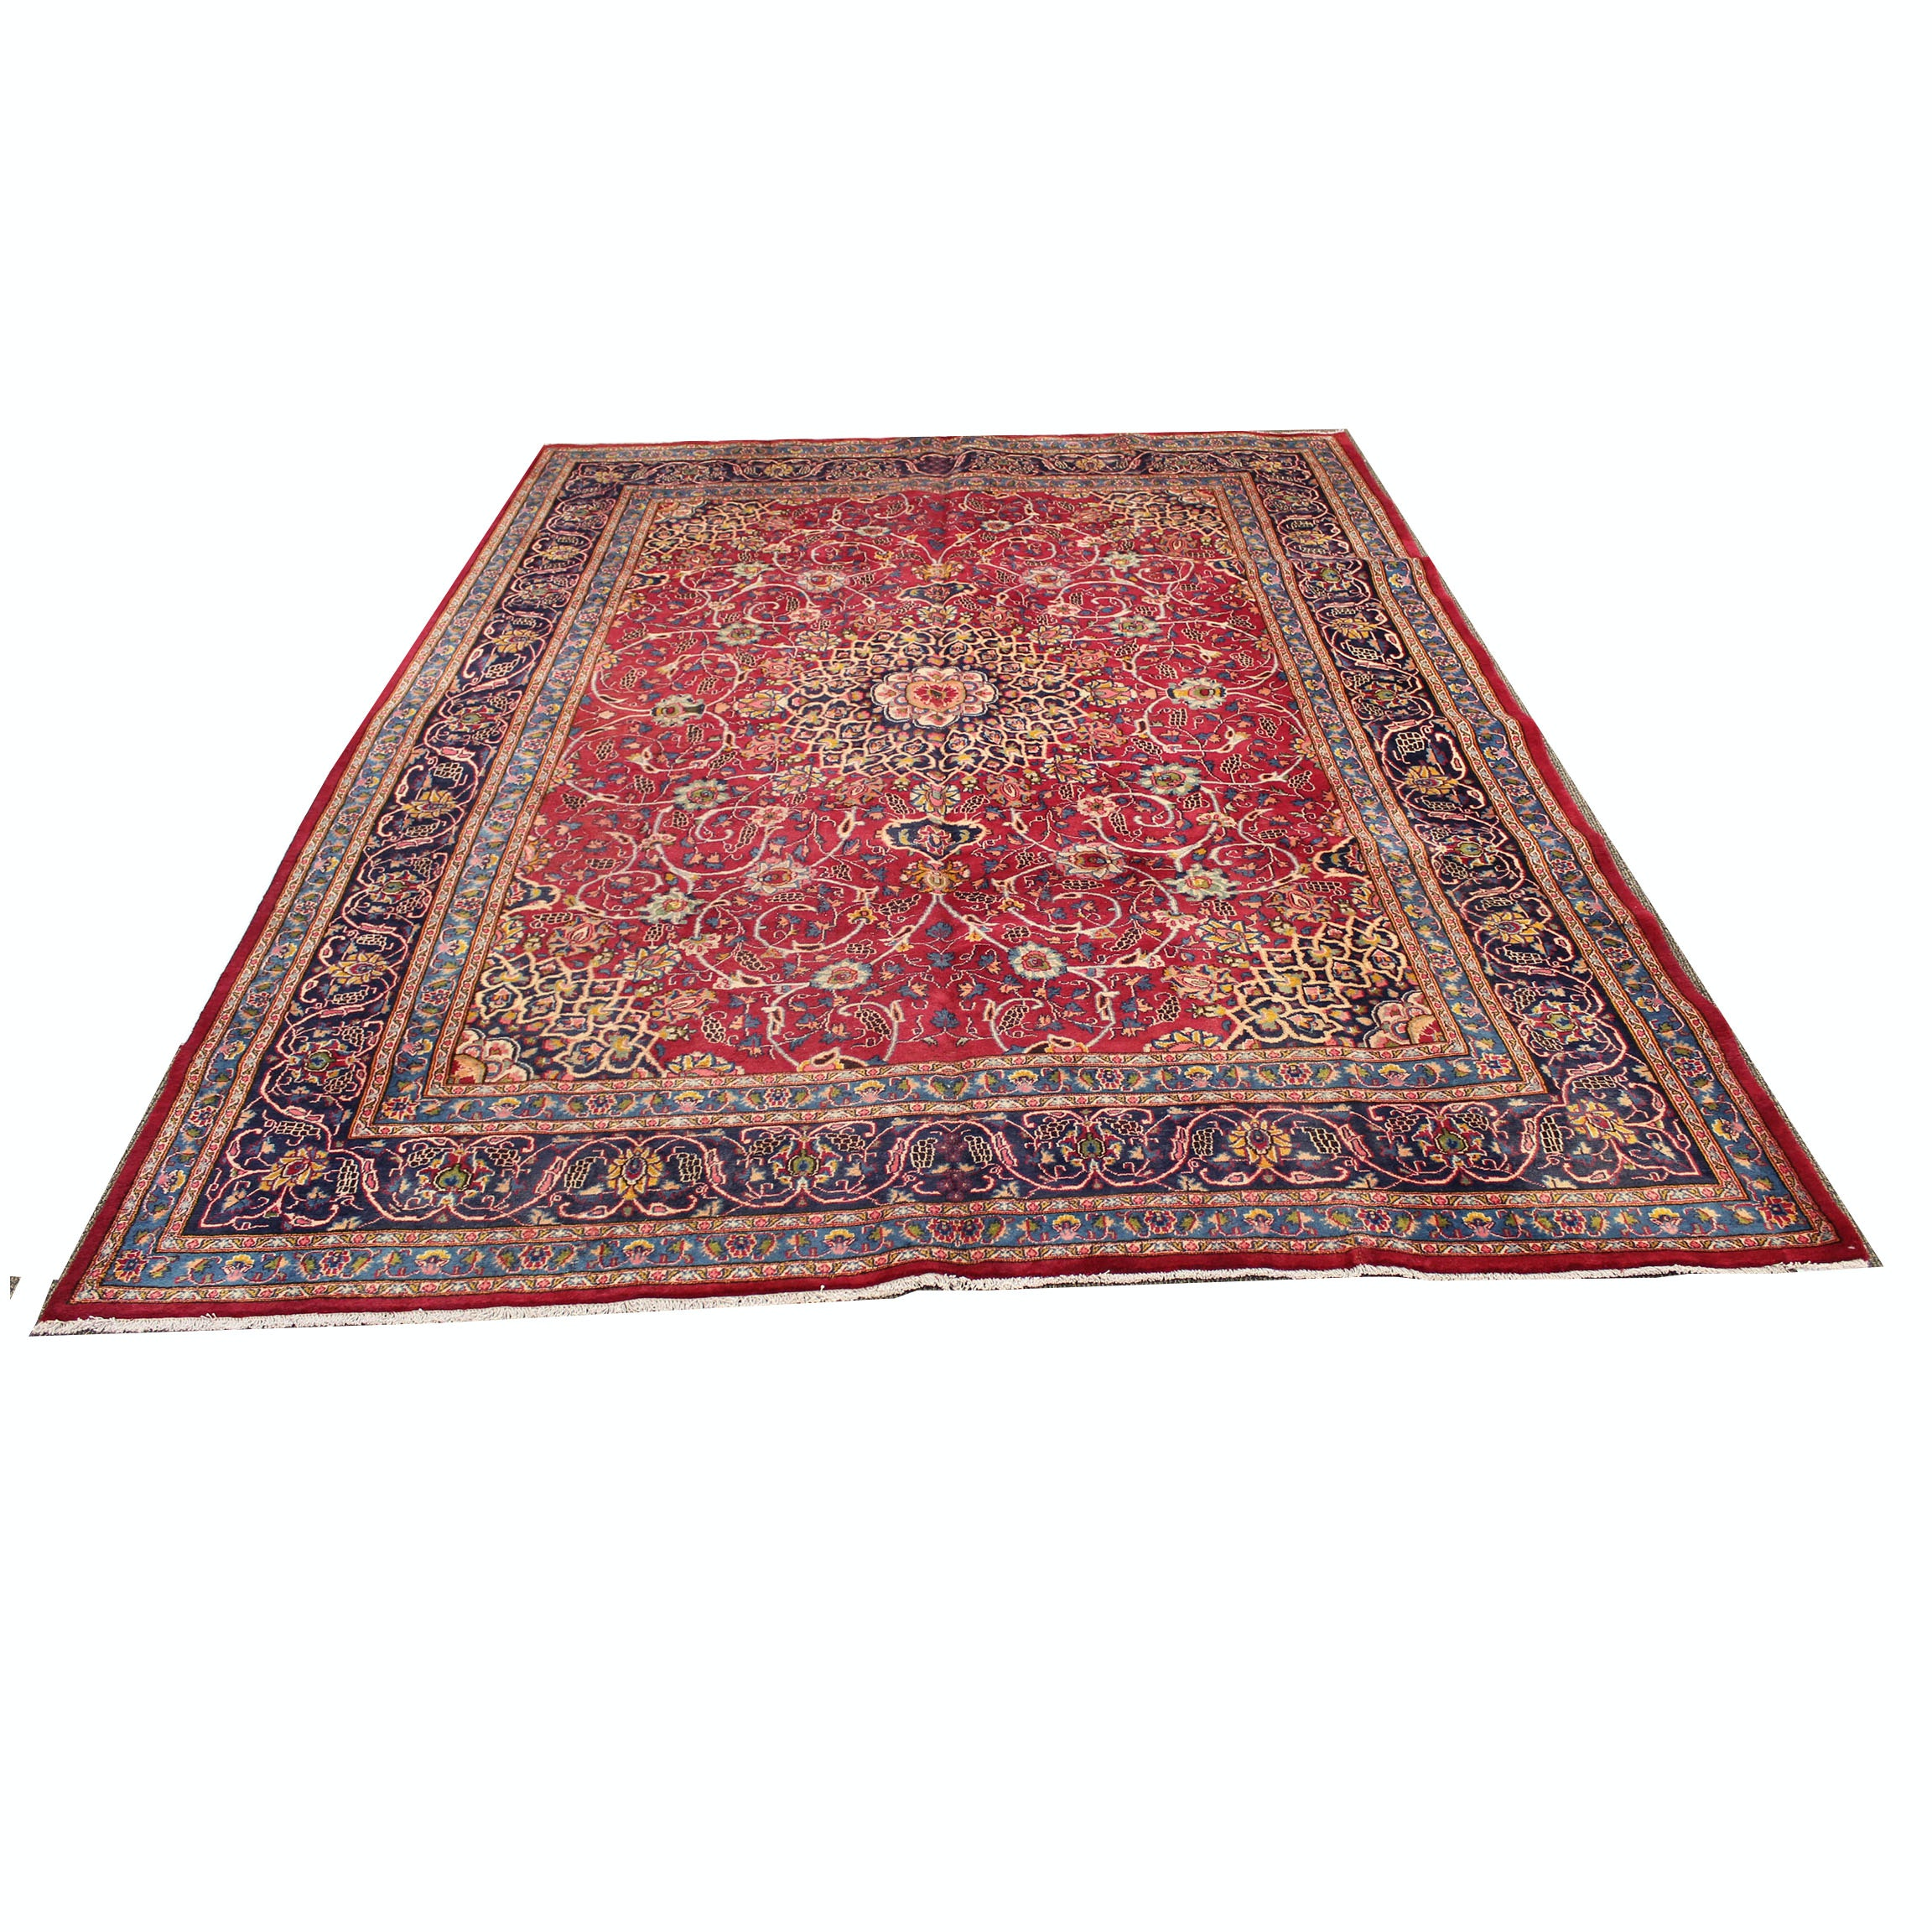 9'8 x 12'8 Semi-Antique Hand-Knotted Persian Mashhad Room Sized Rug